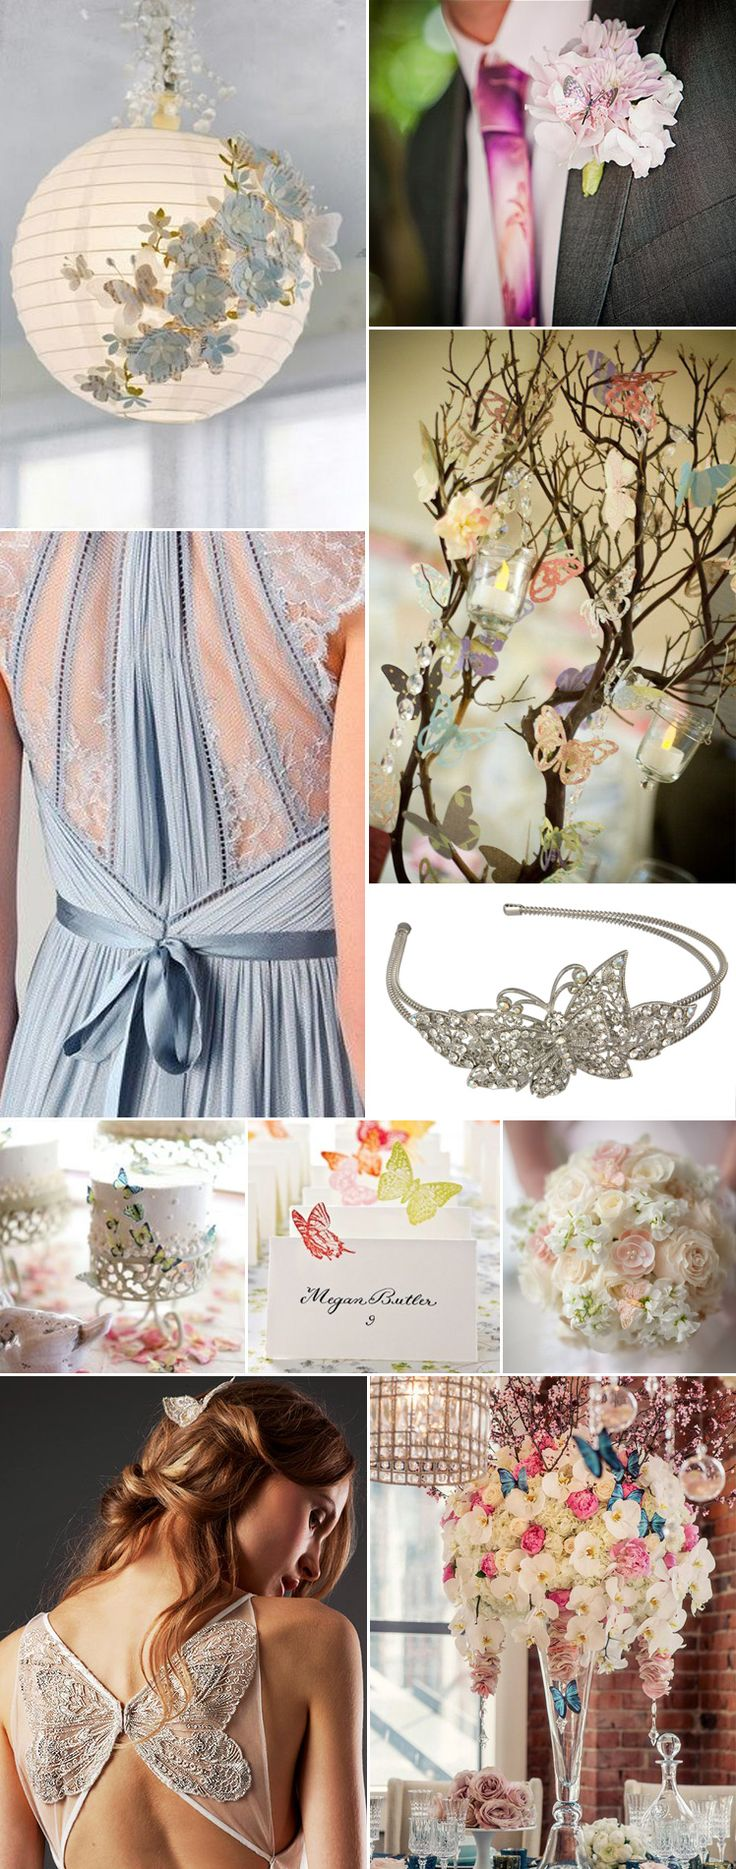 As a symbol of new life, transformation and (in Japanese culture) marital bliss, we can see why butterfly themed weddings are popular around the world